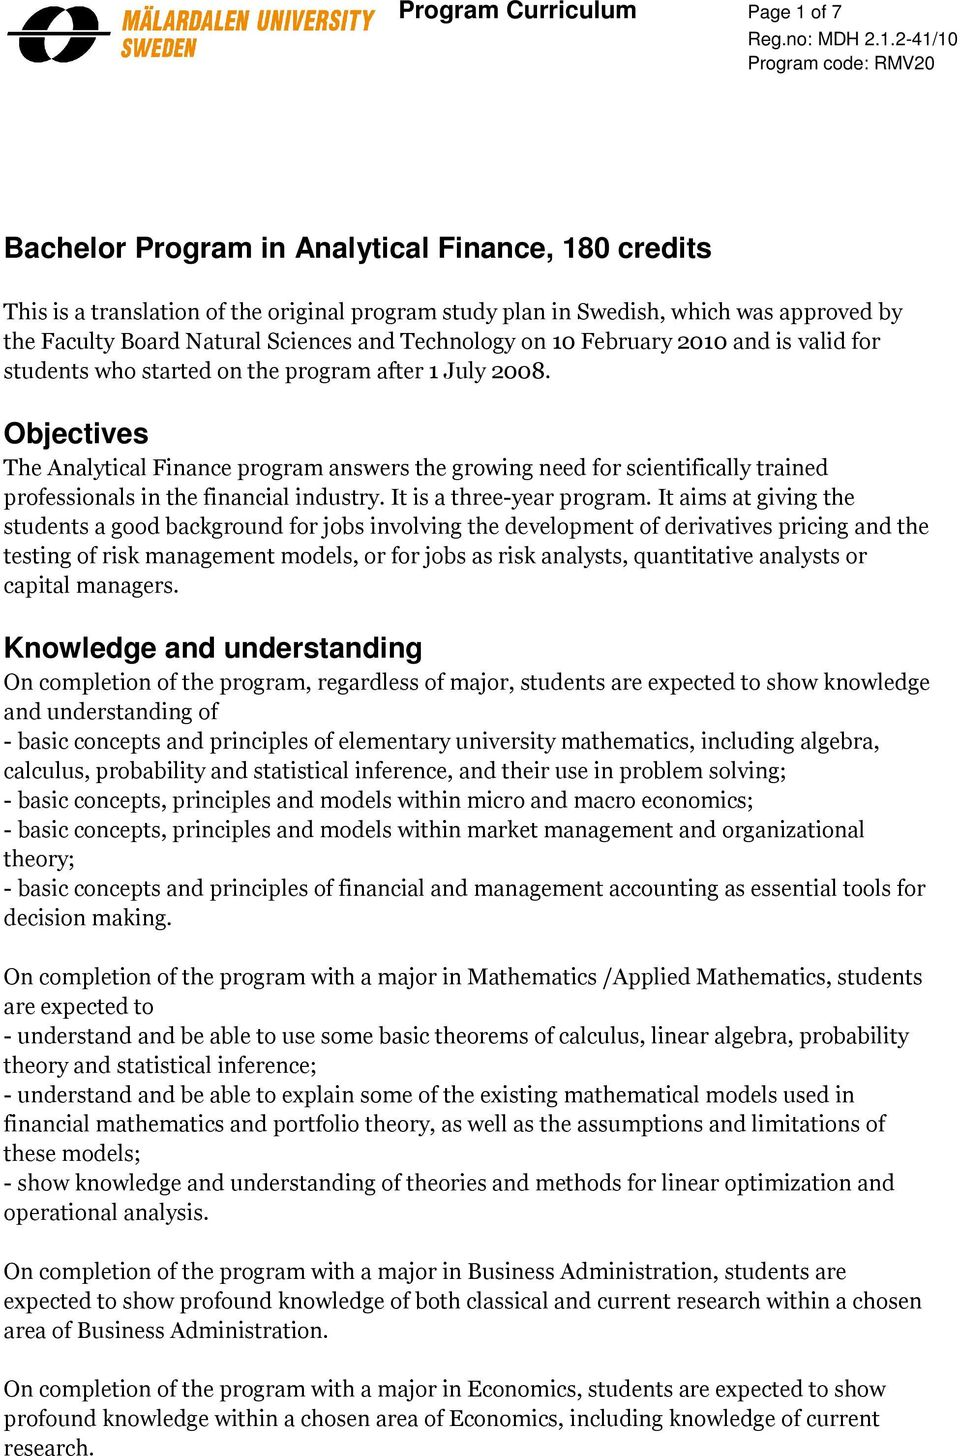 Objectives The Analytical Finance program answers the growing need for scientifically trained professionals in the financial industry. It is a three-year program.